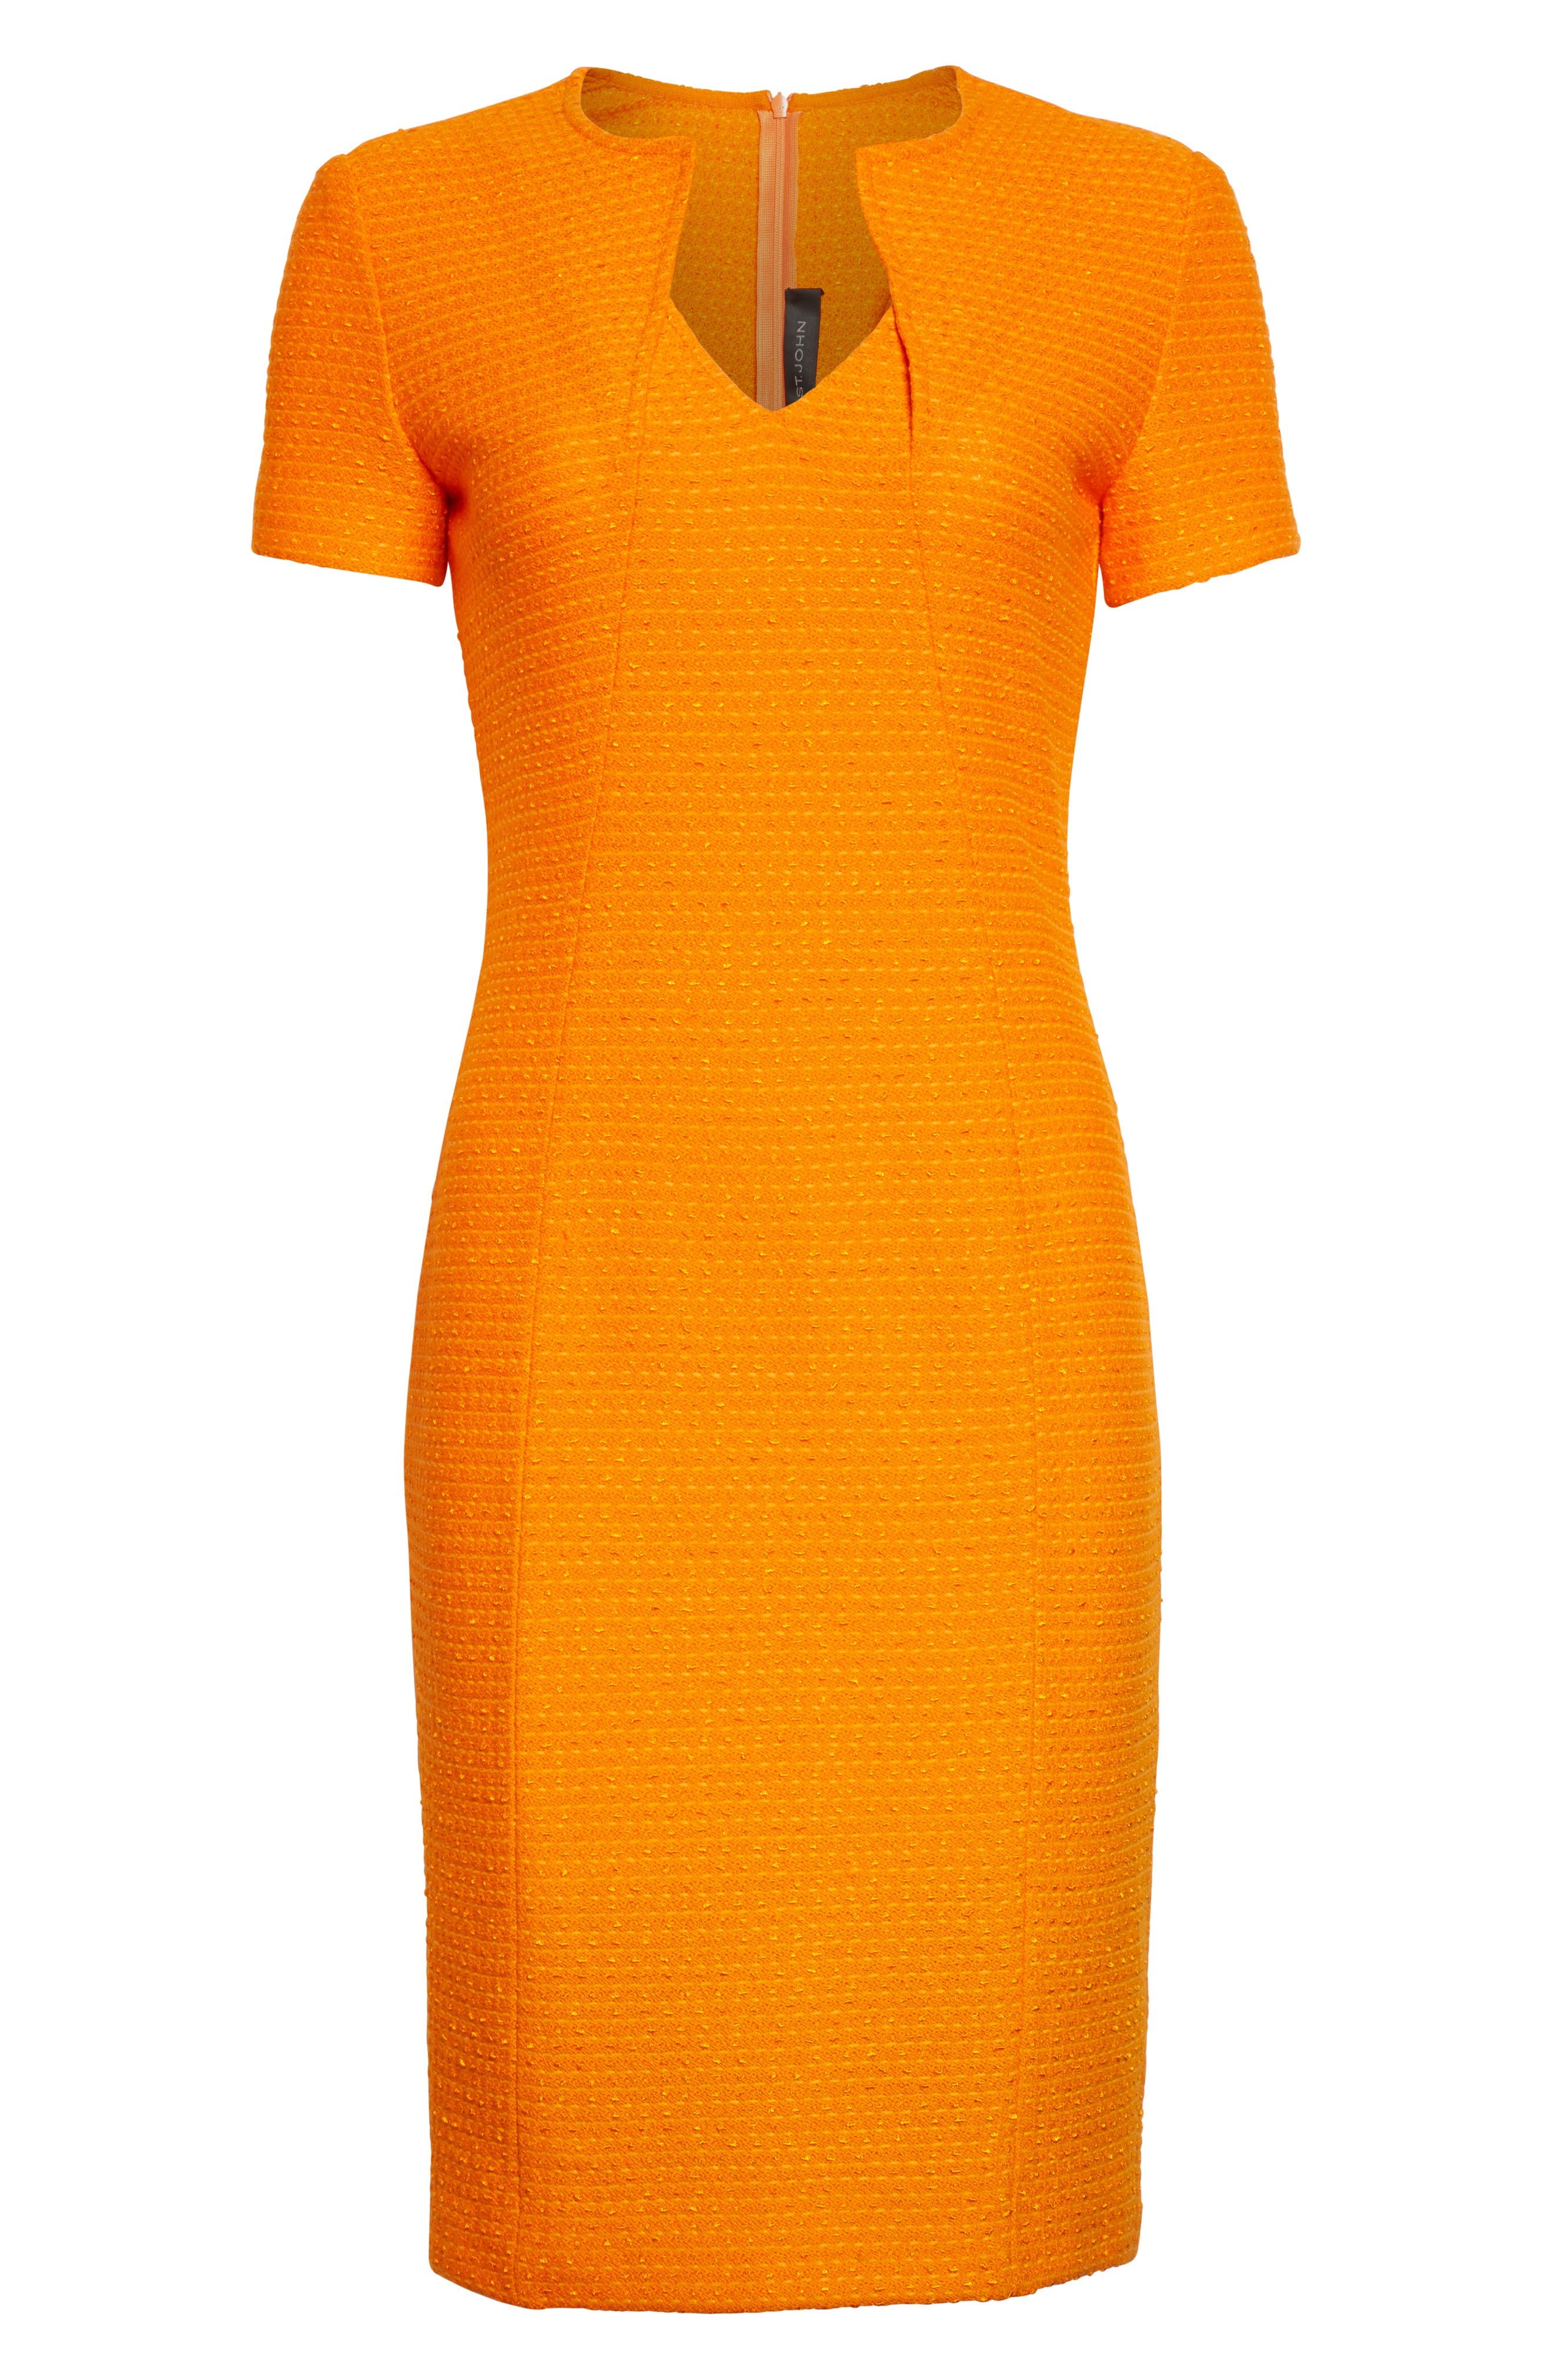 Alternate Image 3  - St. John Collection Ribbon Texture Knit Dress